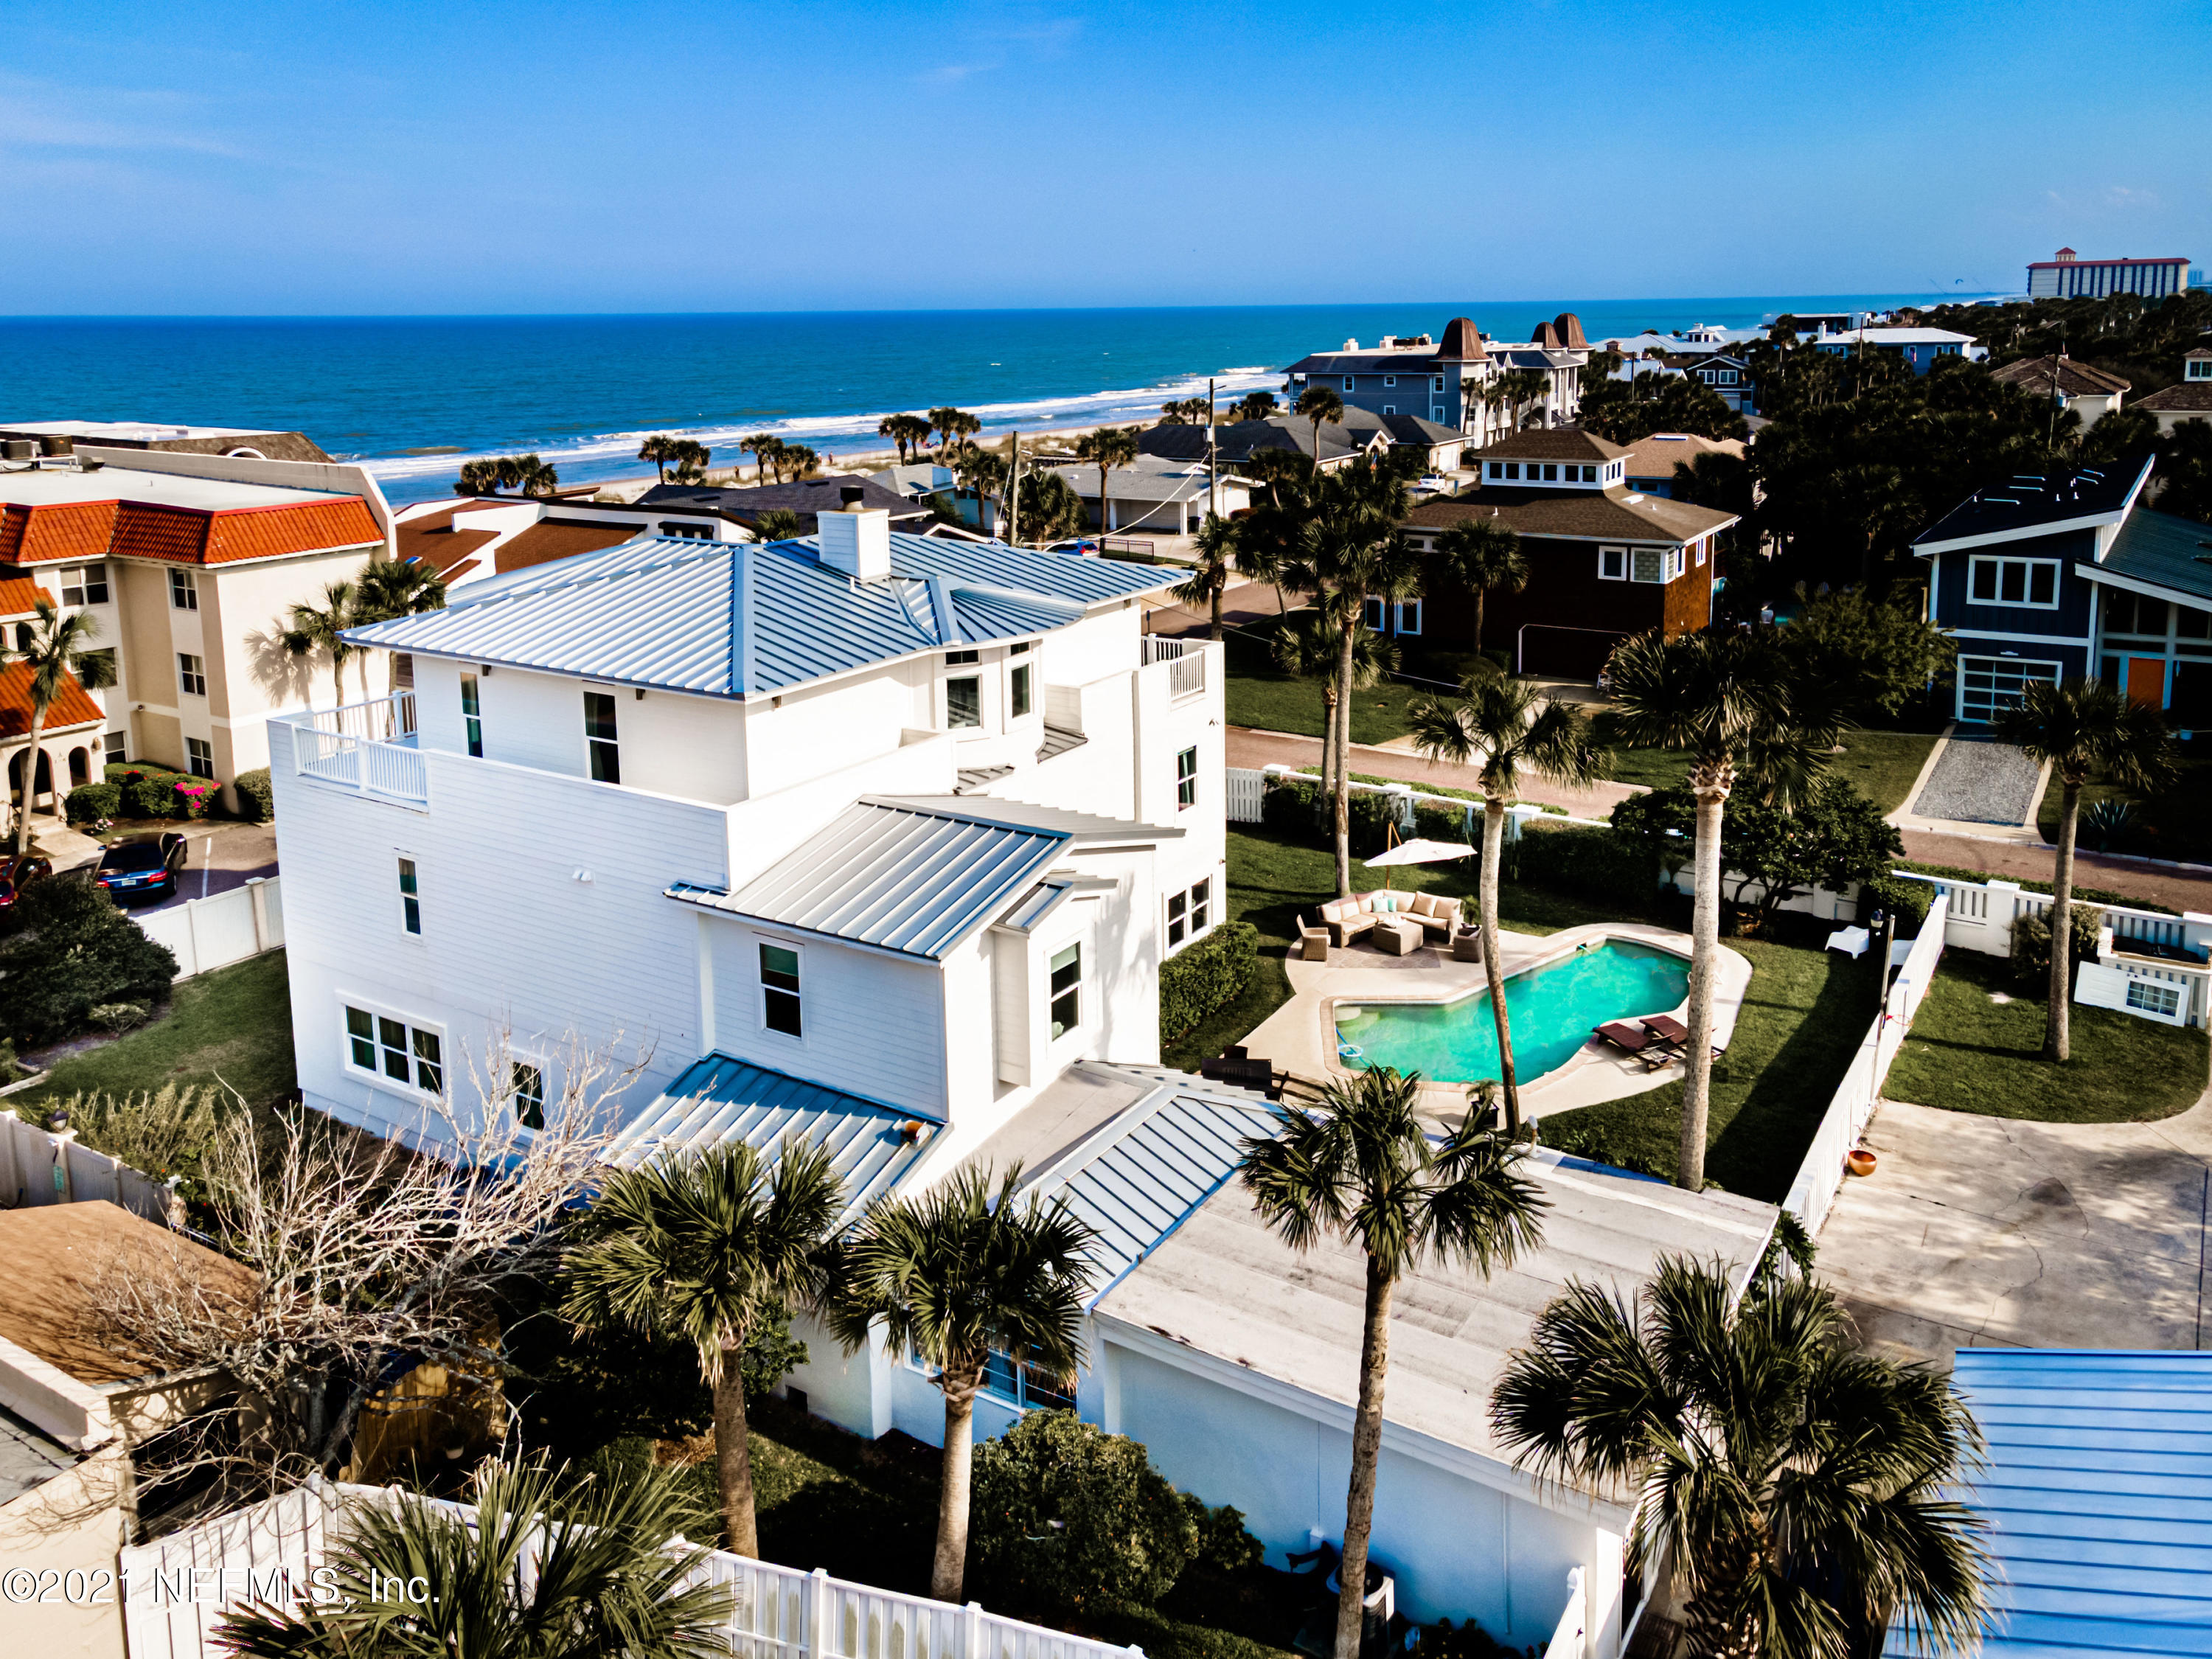 Presenting the epitome of urban coastal charm and elegance: Welcome home to 890 Beach Avenue. Stunning three-story Atlantic Beach pool home across the street from the ocean!  Beautifully updated and thoughtfully renovated to embody the vintage charm and character of Atlantic Beach. Situated on a 150'x100' estate lot with magnificent ocean views, detached garage and separate guest home. Walk through the double door entrance into a grand foyer with two-story cathedral ceiling, leading to a captivating curved staircase designed to exude the ultimate architectural ambiance. Open floorplan with gas fireplace and custom kitchen built for luxury and entertaining with attention to detail and options including JENN-AIR built-in appliances, quartz counters, custom cabinetry with soft-close hardware decorative frosted doors, kitchen window sink, trash compactor, organization enthusiasts' dream walk-in pantry housing automatic lighting, custom built-in shelving and drawers, large separate entertainment prep island with quartz counter, bar sink, ice maker and wine cooler. Powder room with opulent custom tile. Expansive laundry room is easily able to house crafting/creative project area with built-in drop zone wall keeping clutter contained and hidden. Closet areas throughout offer extra storage, including hallway tech closet for convenient central location of wired whole-home sound system, alarm, security camera, and tech equipment needs. The 2nd floor offers four bedrooms and two bathrooms, including a complete guest suite with private bathroom. The 3rd level houses the luxury owners retreat. Large landing leads to lounge and exercise area with separate office. Owners' bedroom faces ocean with window views plus private ocean-facing balcony. Feature-rich owners' bath including marble counters, seamless shower, separate bathing room which highlights freestanding soaking tub, two separate owner closets with one leading into an additional private dressing room. Exterior features include detached two-car garage and separate guest home. Guest home includes family room, full kitchen, bedroom and bathroom. Native plants offer low-maintenance landscaping. Non-conforming privacy fence allowed due to being built prior to current AB fencing regulations. The side/front yard features a small herb garden with raised beds, including play yard with rubber mulch, outdoor pool with entertainment patio surround making a convenient stop after an ocean swim. Nestled in Atlantic Beach, steps away to the ocean. Bike or walk to nearby parks, restaurants and shops while reveling in the best of beach life. Public beach access on 7th.